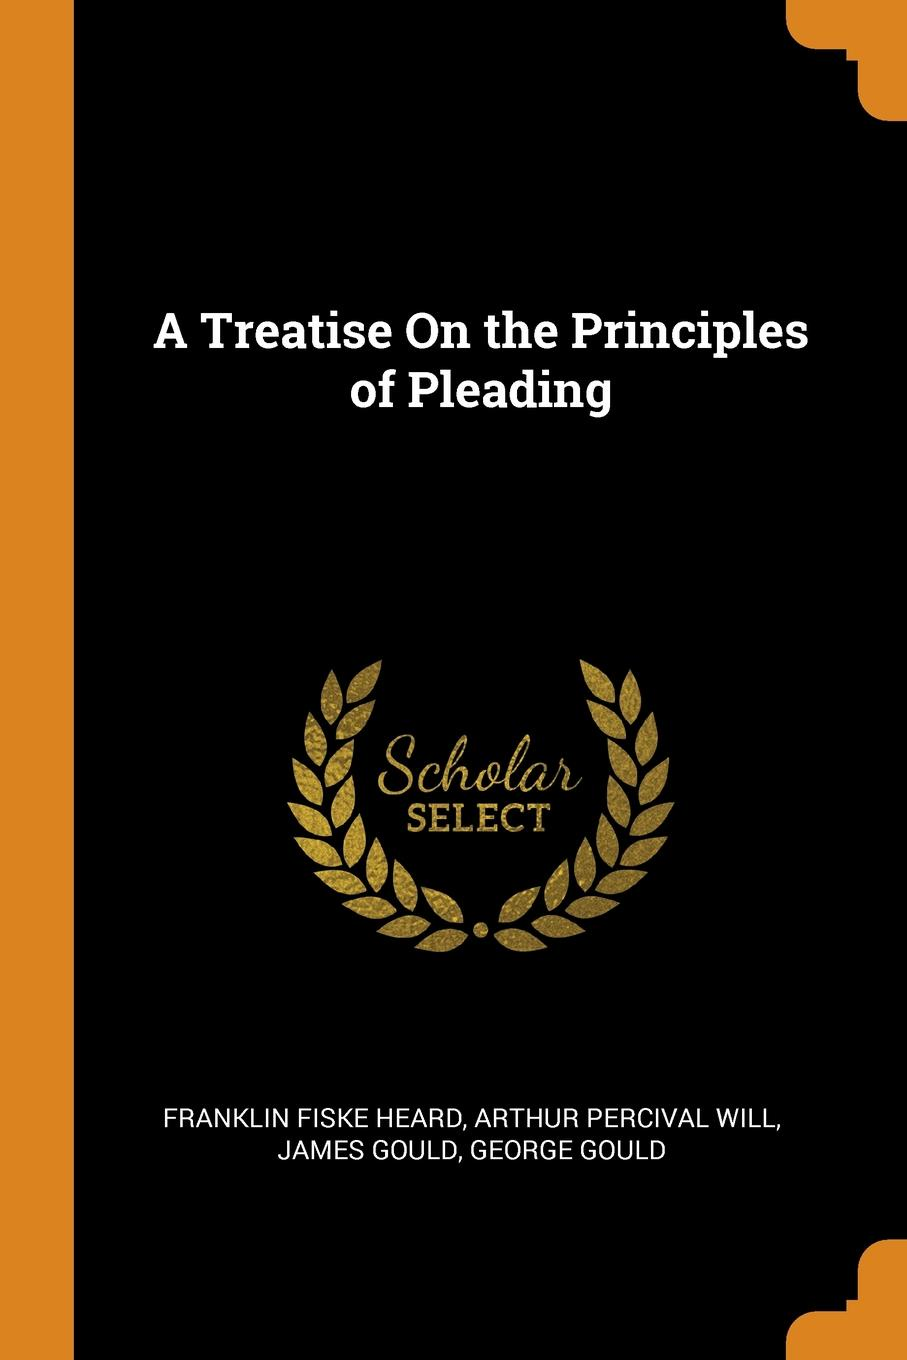 A Treatise On the Principles of Pleading. Franklin Fiske Heard, Arthur Percival Will, James Gould